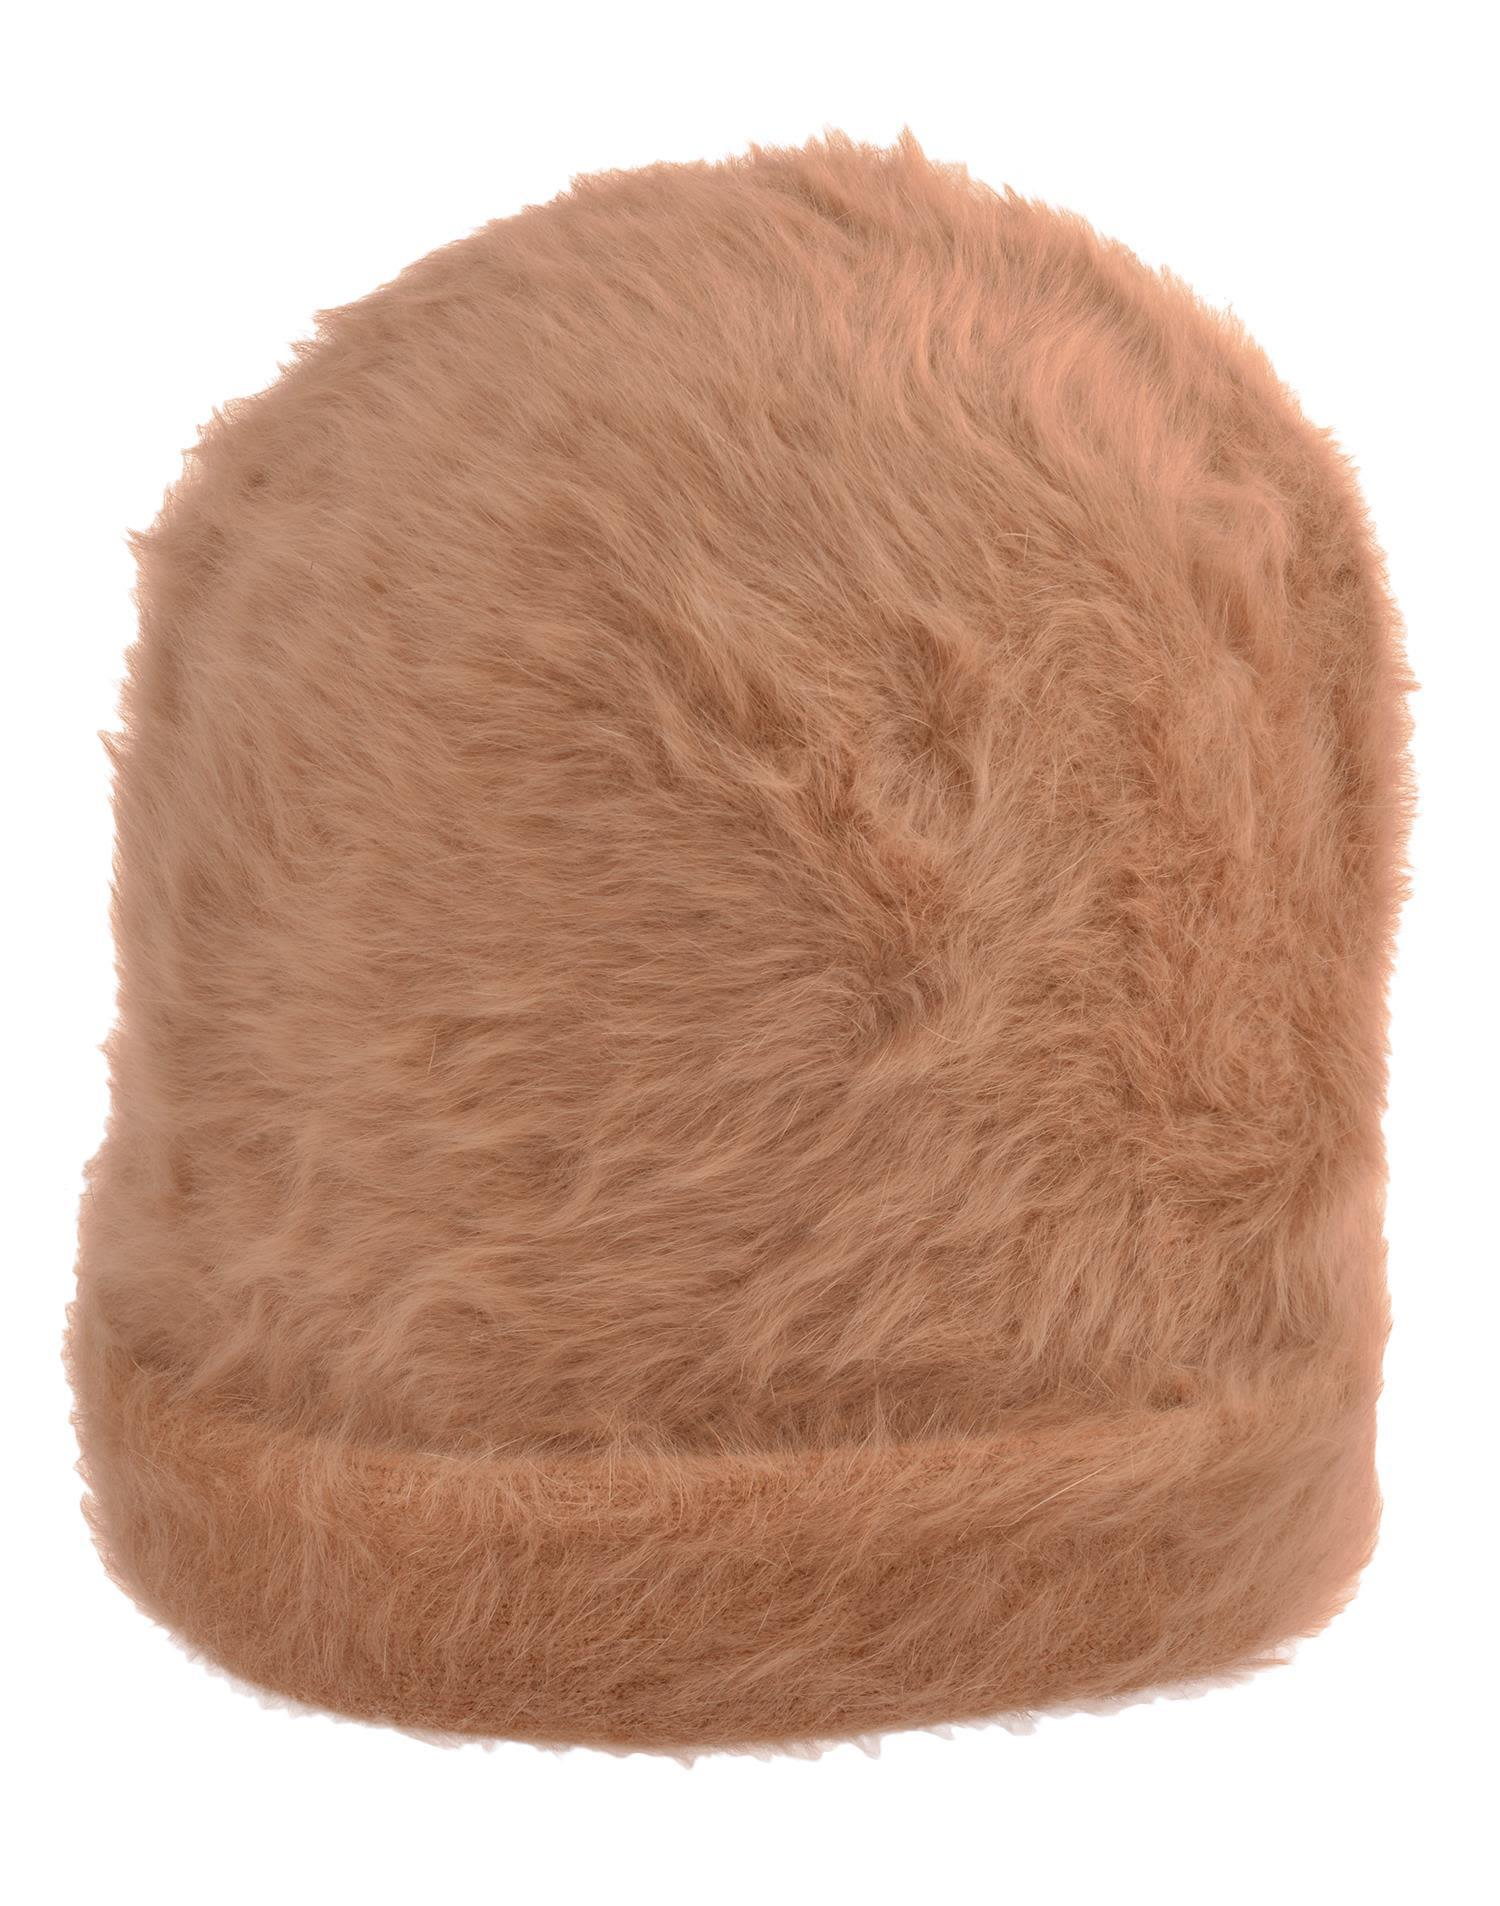 Reinhard Plank Lapin Hat In Camel